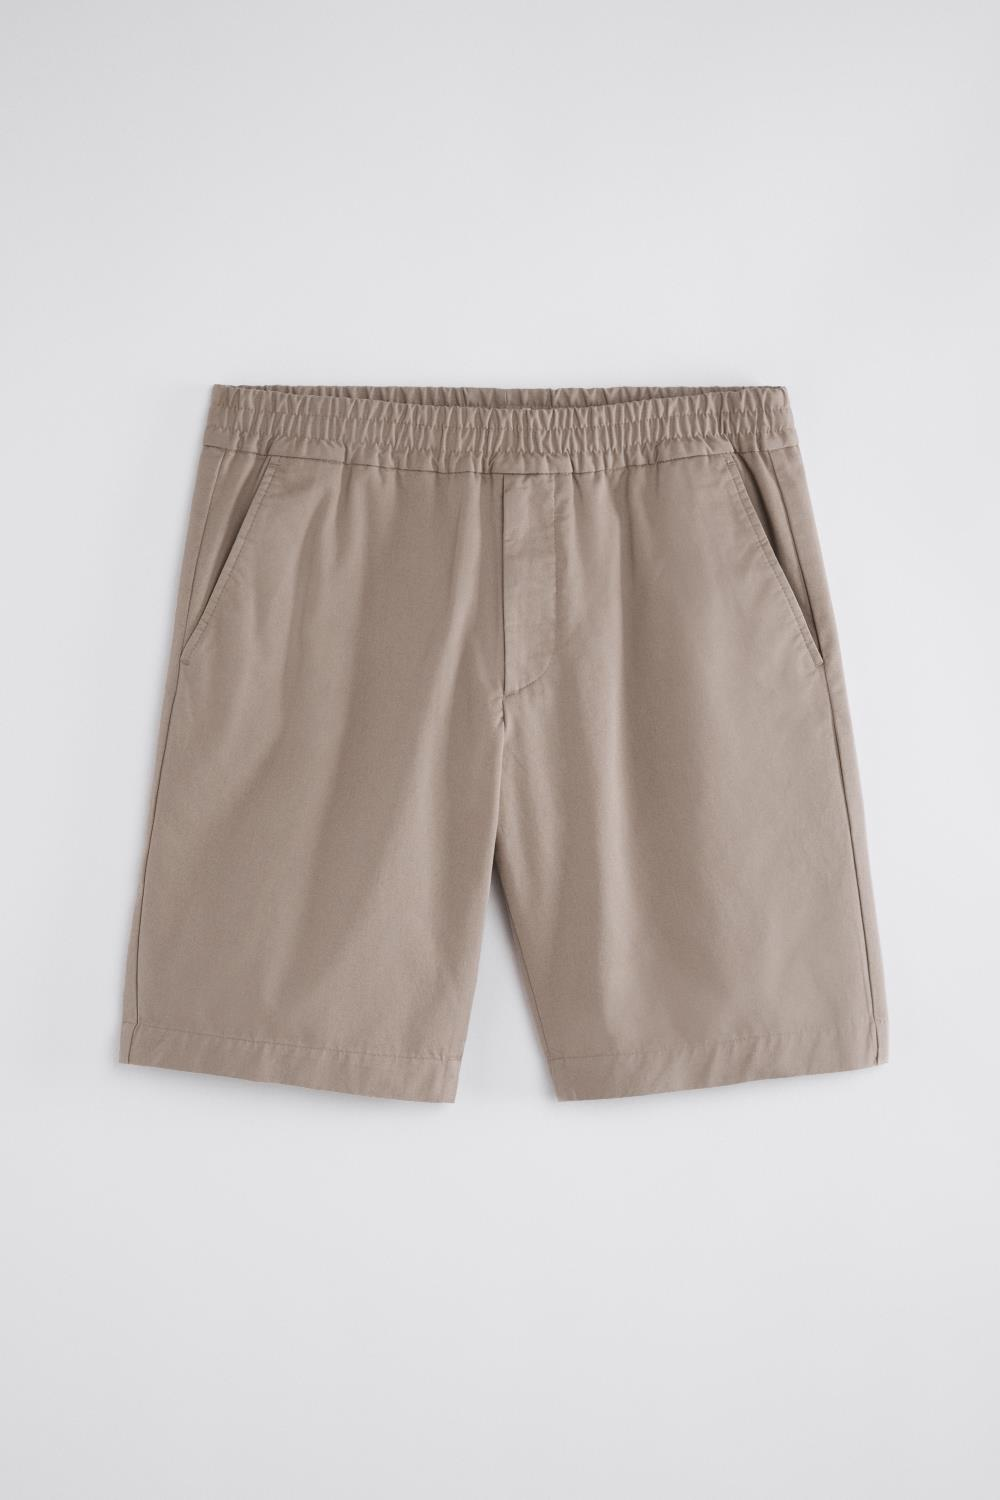 M. Terry Cotton Shorts